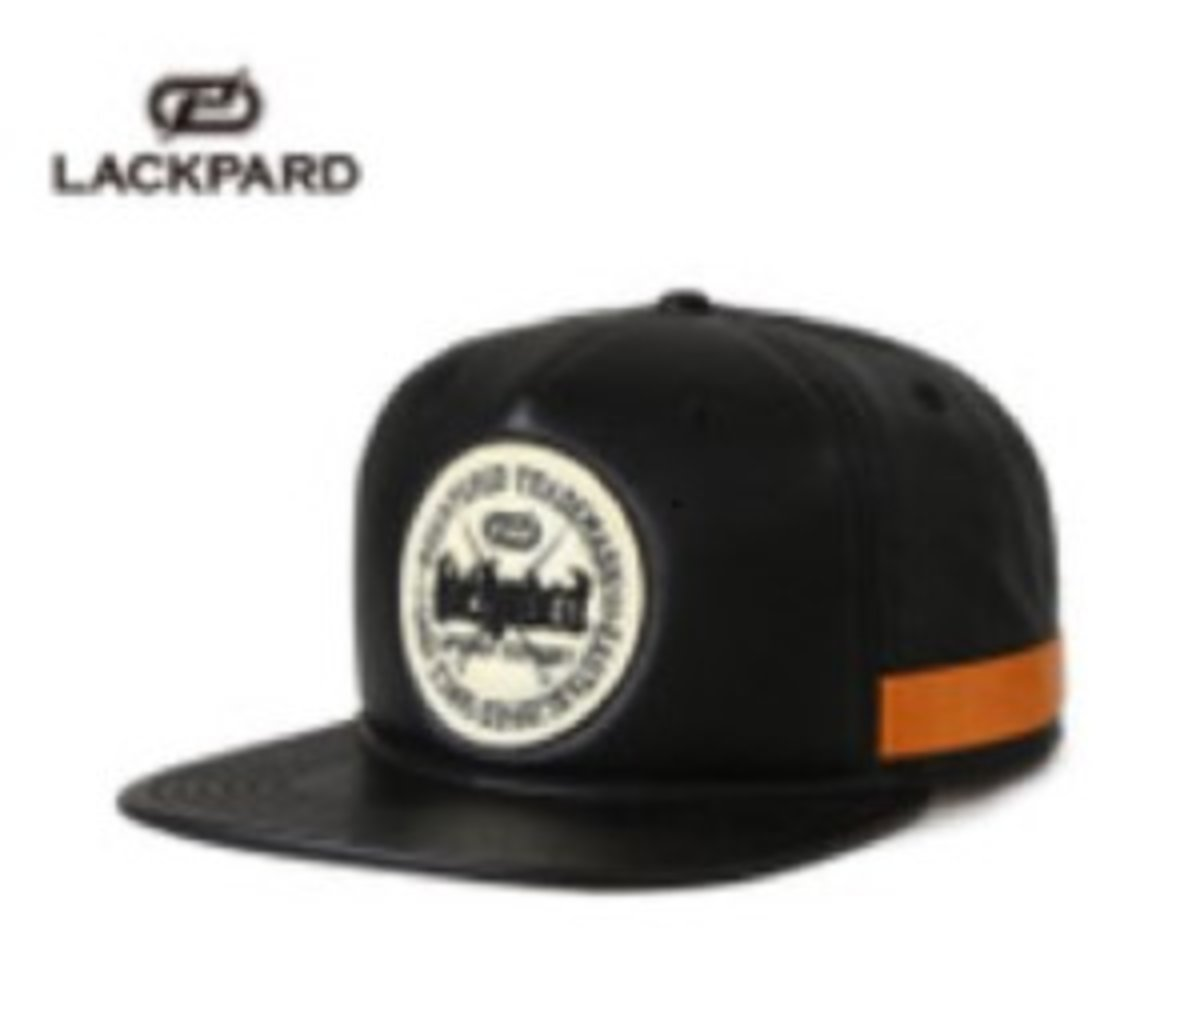 Korean Cap (Hiphop Style) (Black and white) - LACKPARD